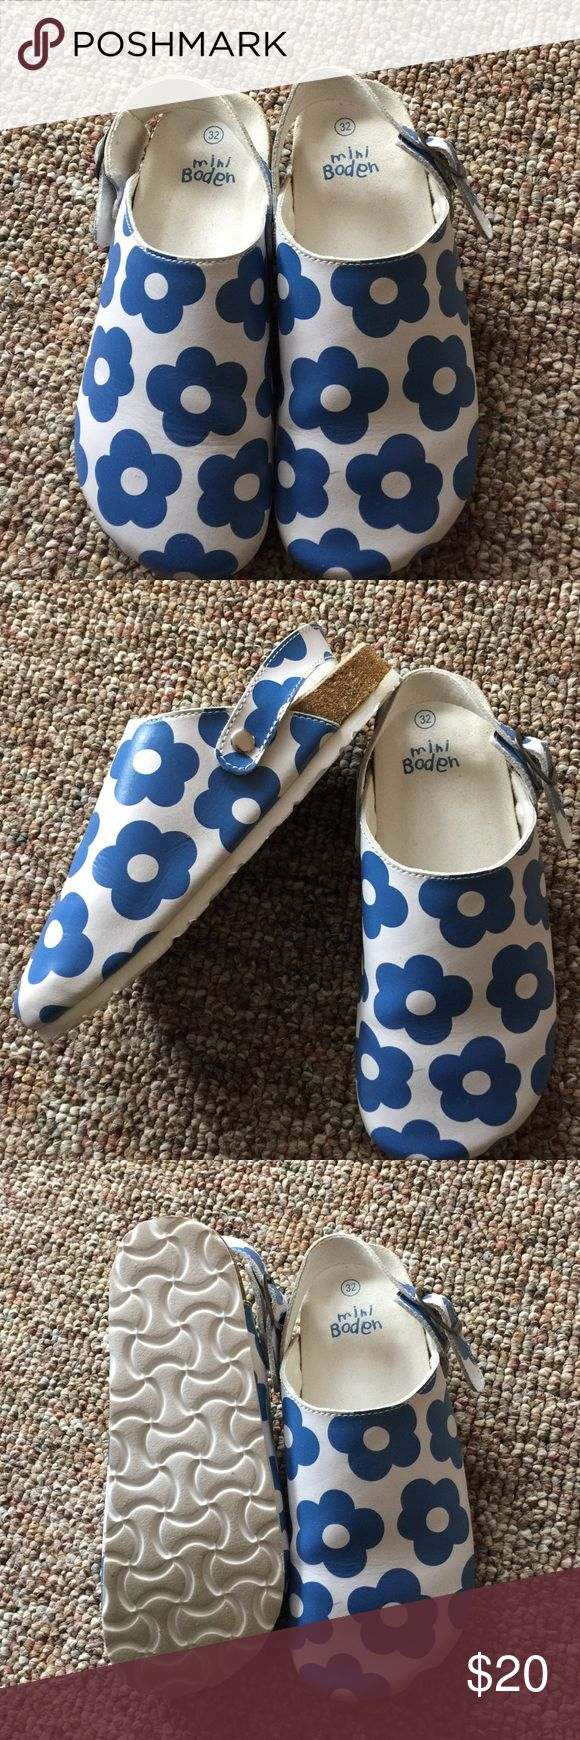 Mini Boden clogs for girls, 32, poppies Very gently pre worn clogs from mini Boden , size 32. Blue and white poppies. Mini Boden Shoes Sandals & Flip Flops